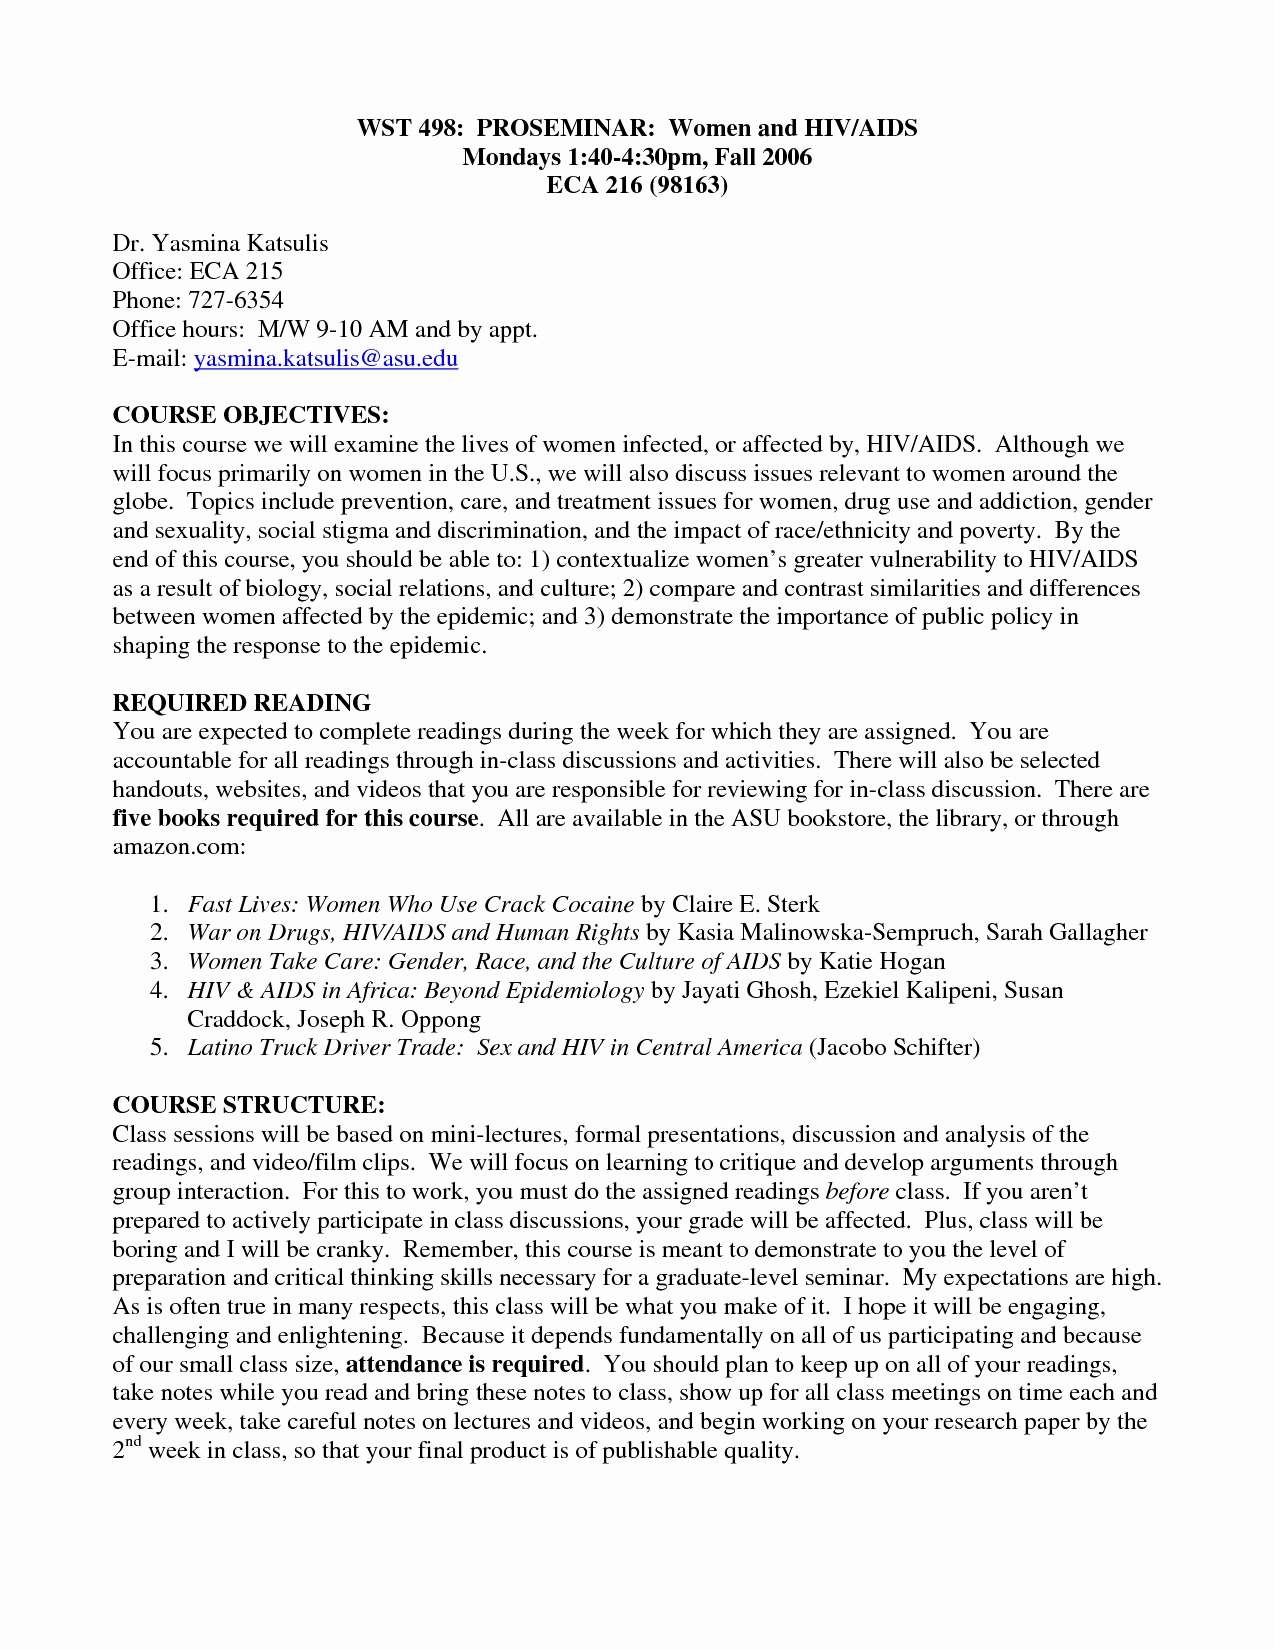 014 Research Paper Example Of Topic Outline Proposal Elegant New Essay Awesome Full